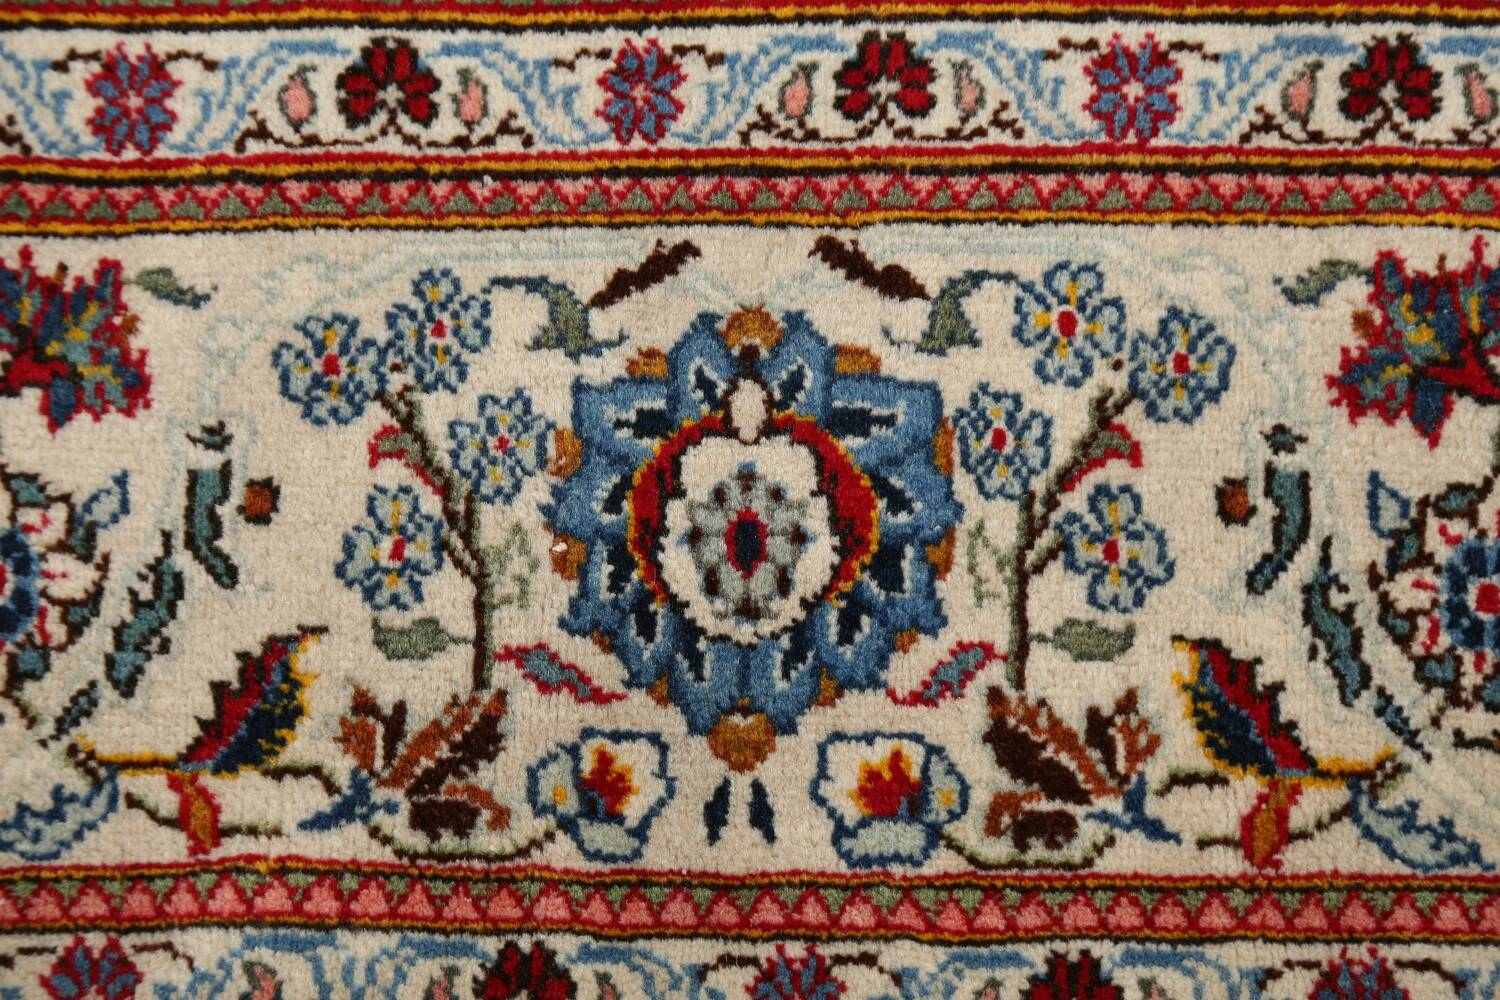 100% Vegetable Dye Floral Kashan Persian Area Rug 4x7 image 7